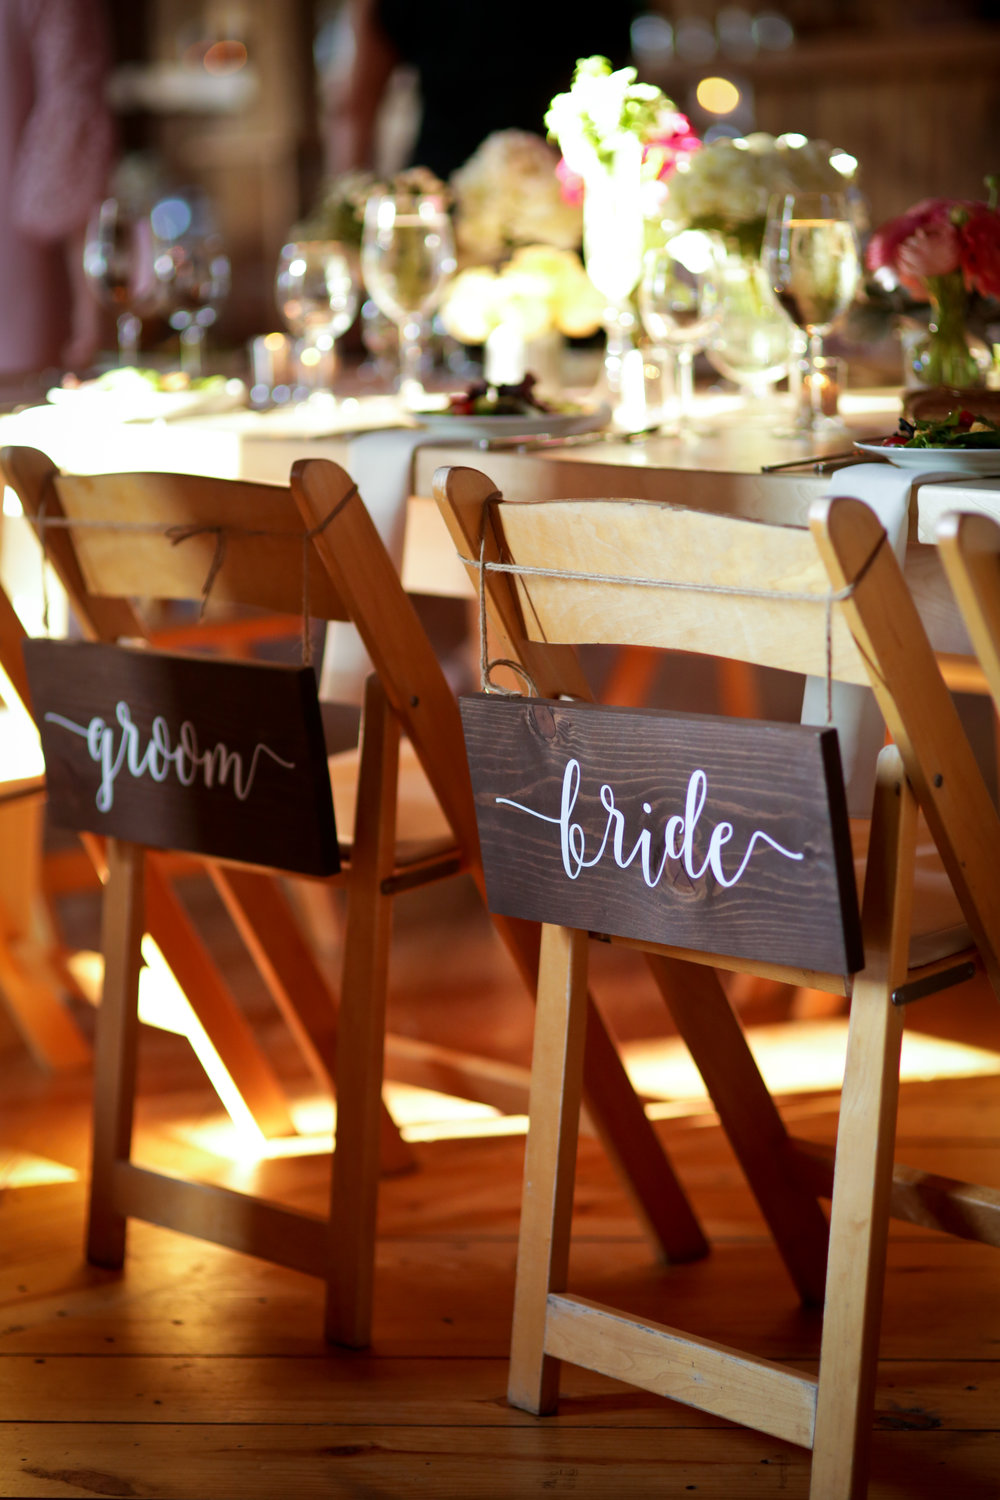 Lovely little detail of the bride and groom chairs.